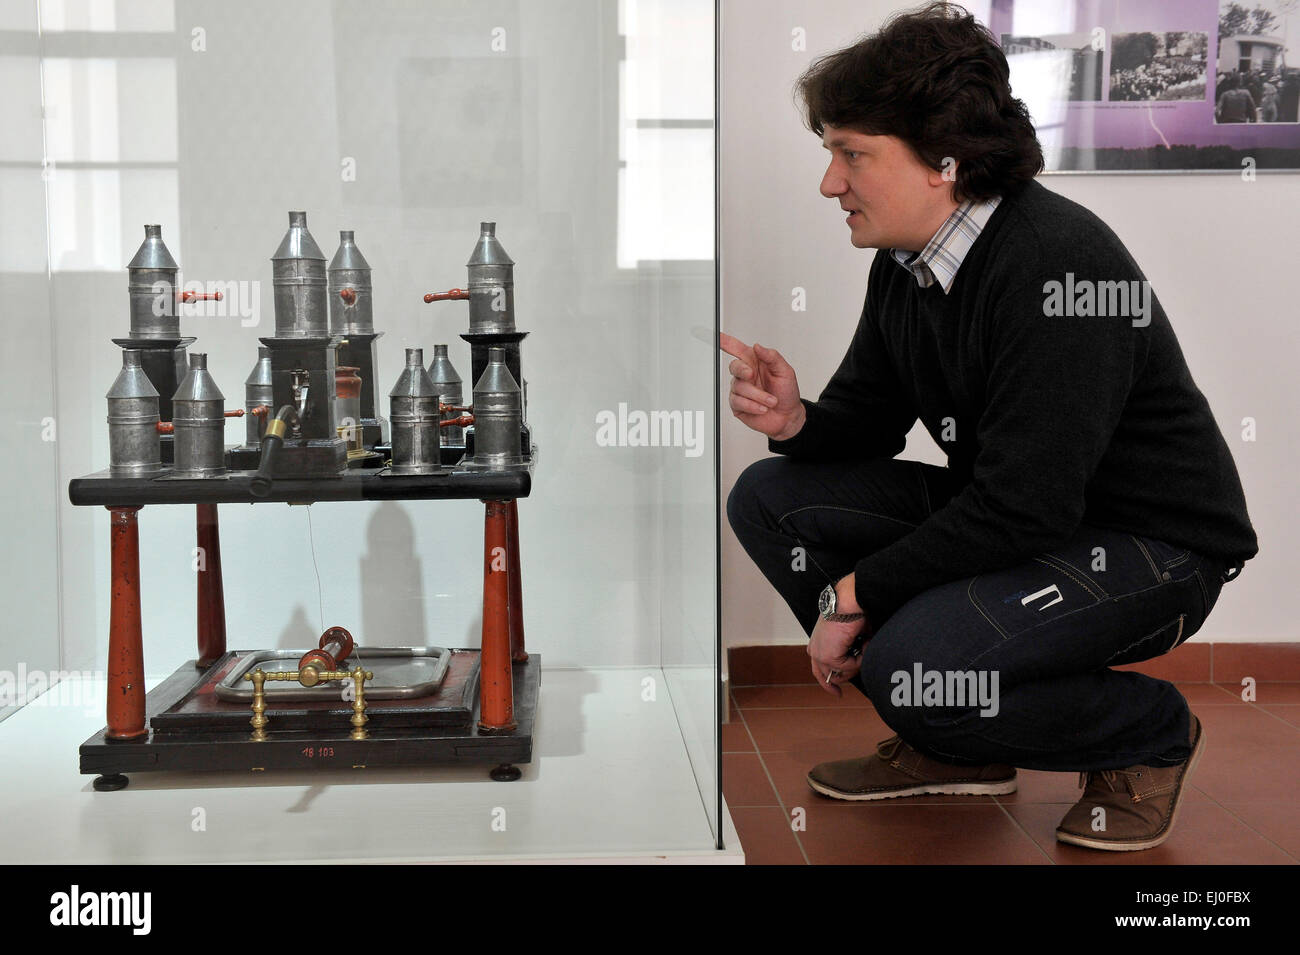 An exhibition to mark the 250th anniversary of the death of Prokop Divis, Czech inventor of the first grounded lightning - Stock Image